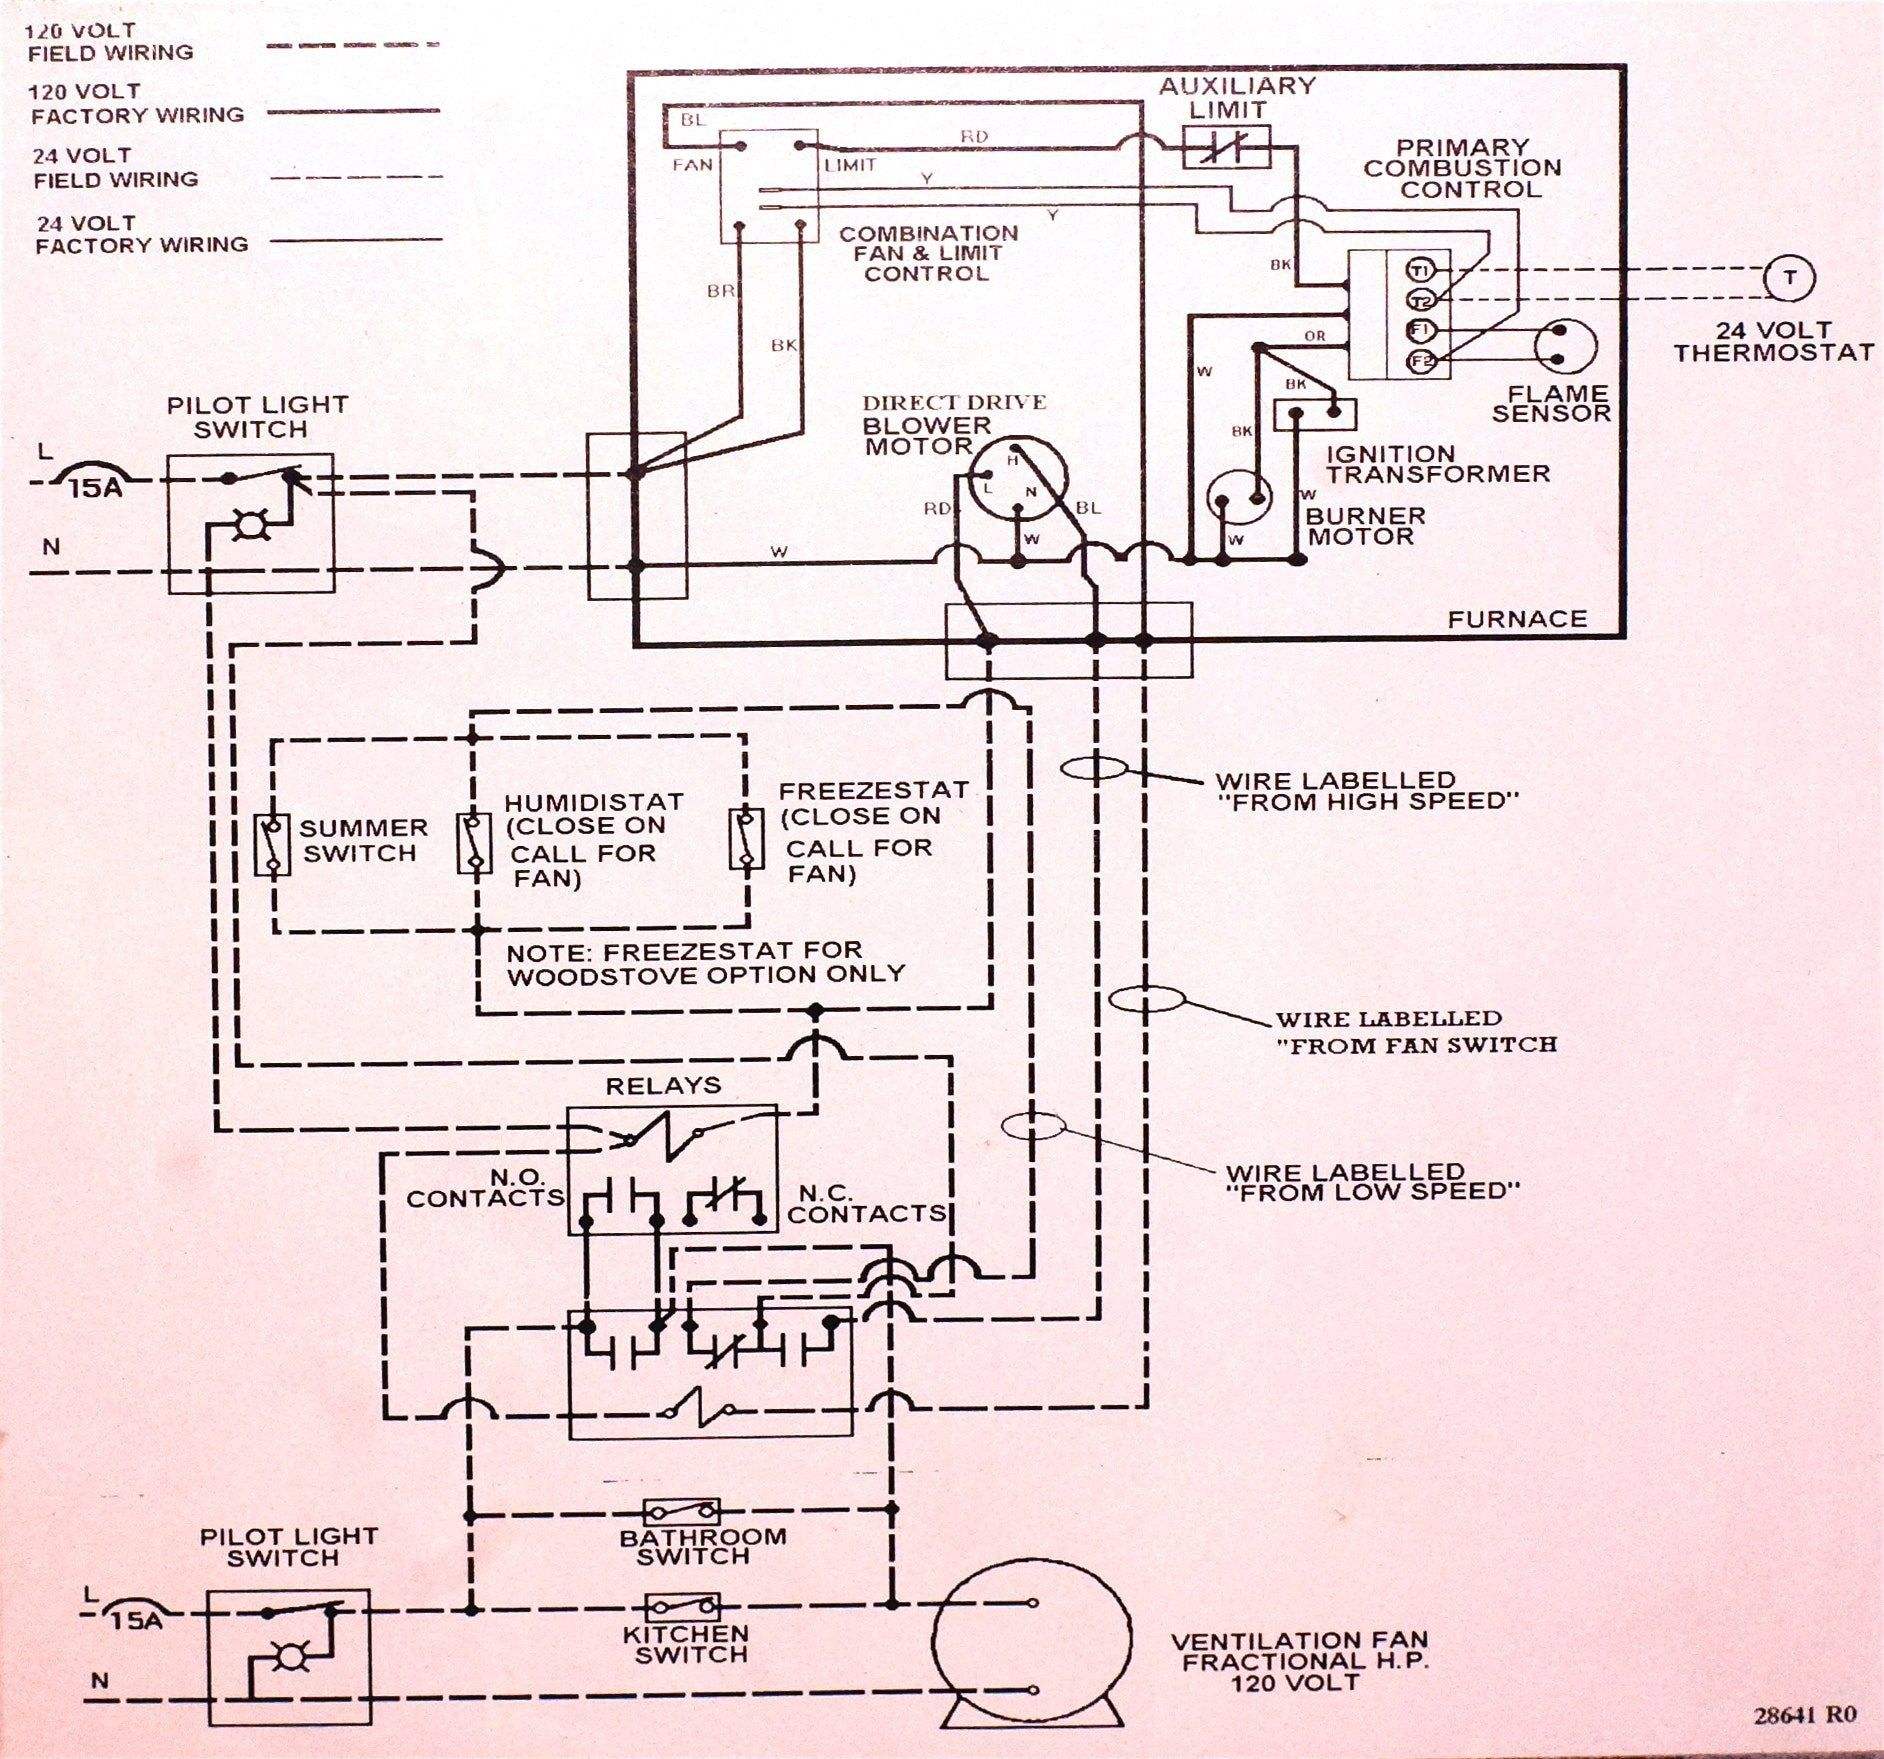 New Wiring Diagram For Ac Thermostat Diagramsample Diagramformats Diagramtemplate Home Thermostat New Thermostat Diagram